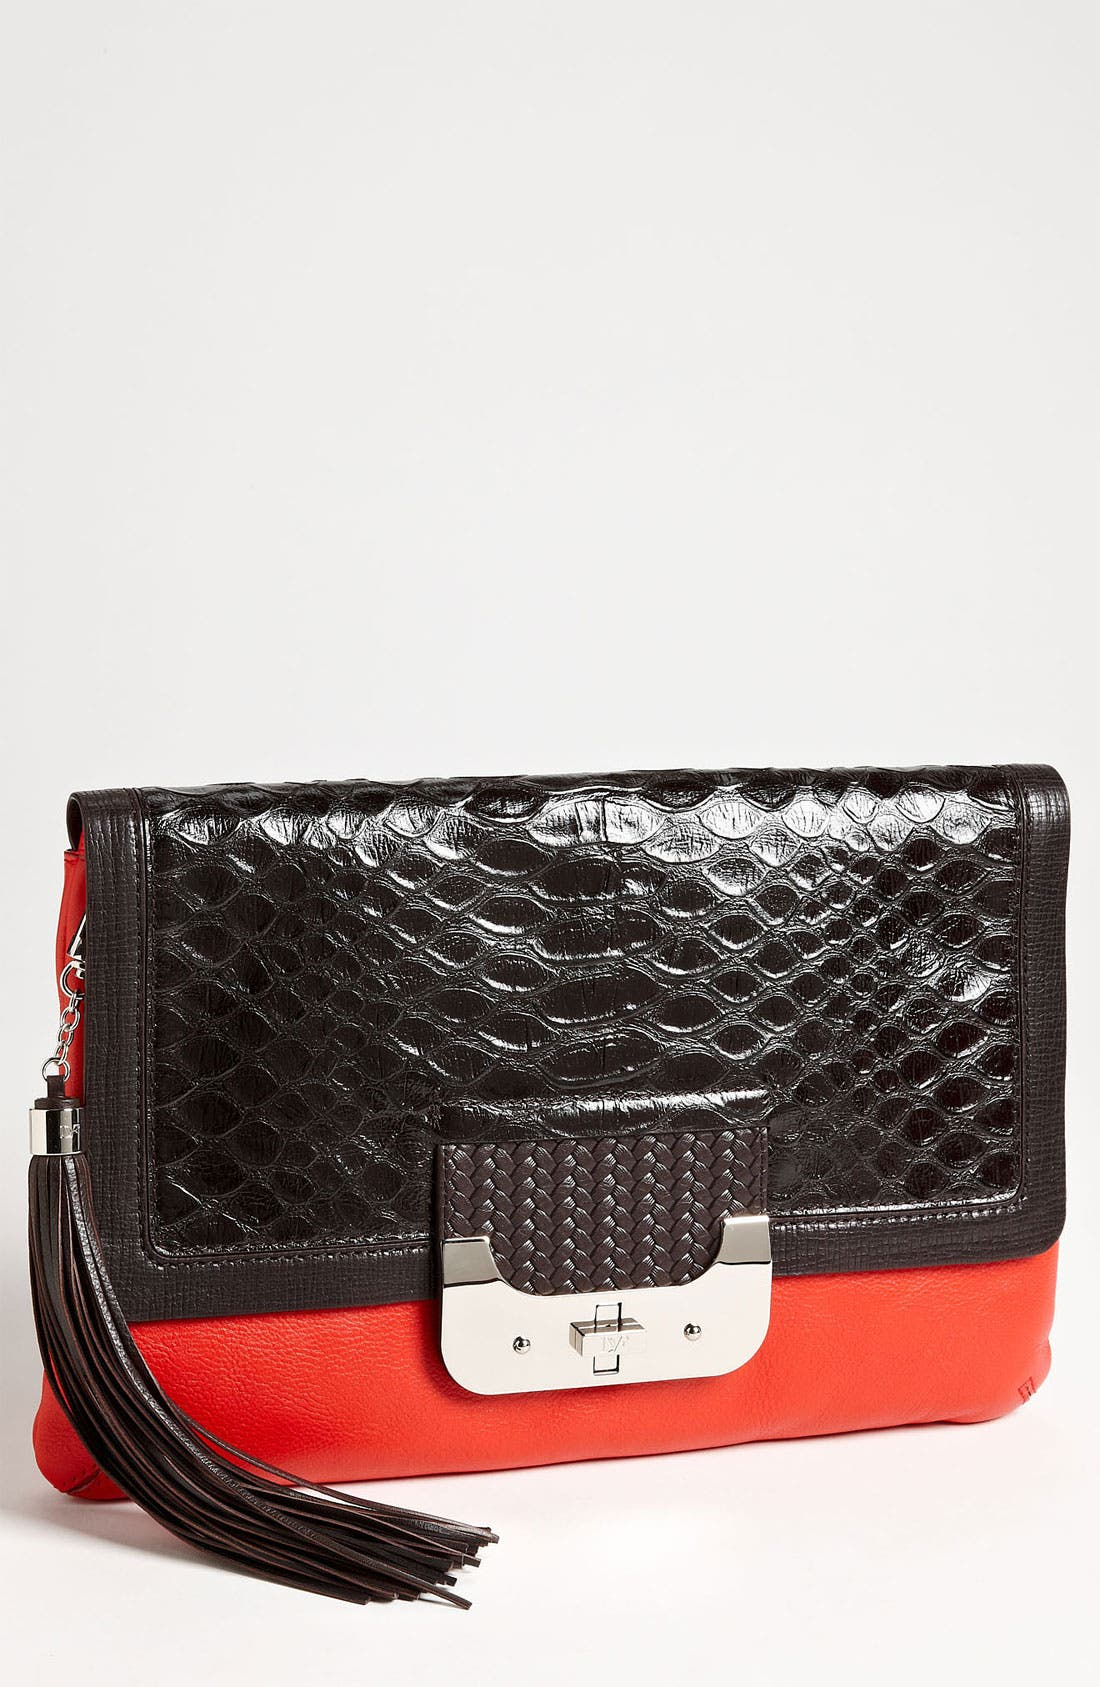 Alternate Image 1 Selected - Diane von Furstenberg 'Harper' Python Embossed Envelope Clutch